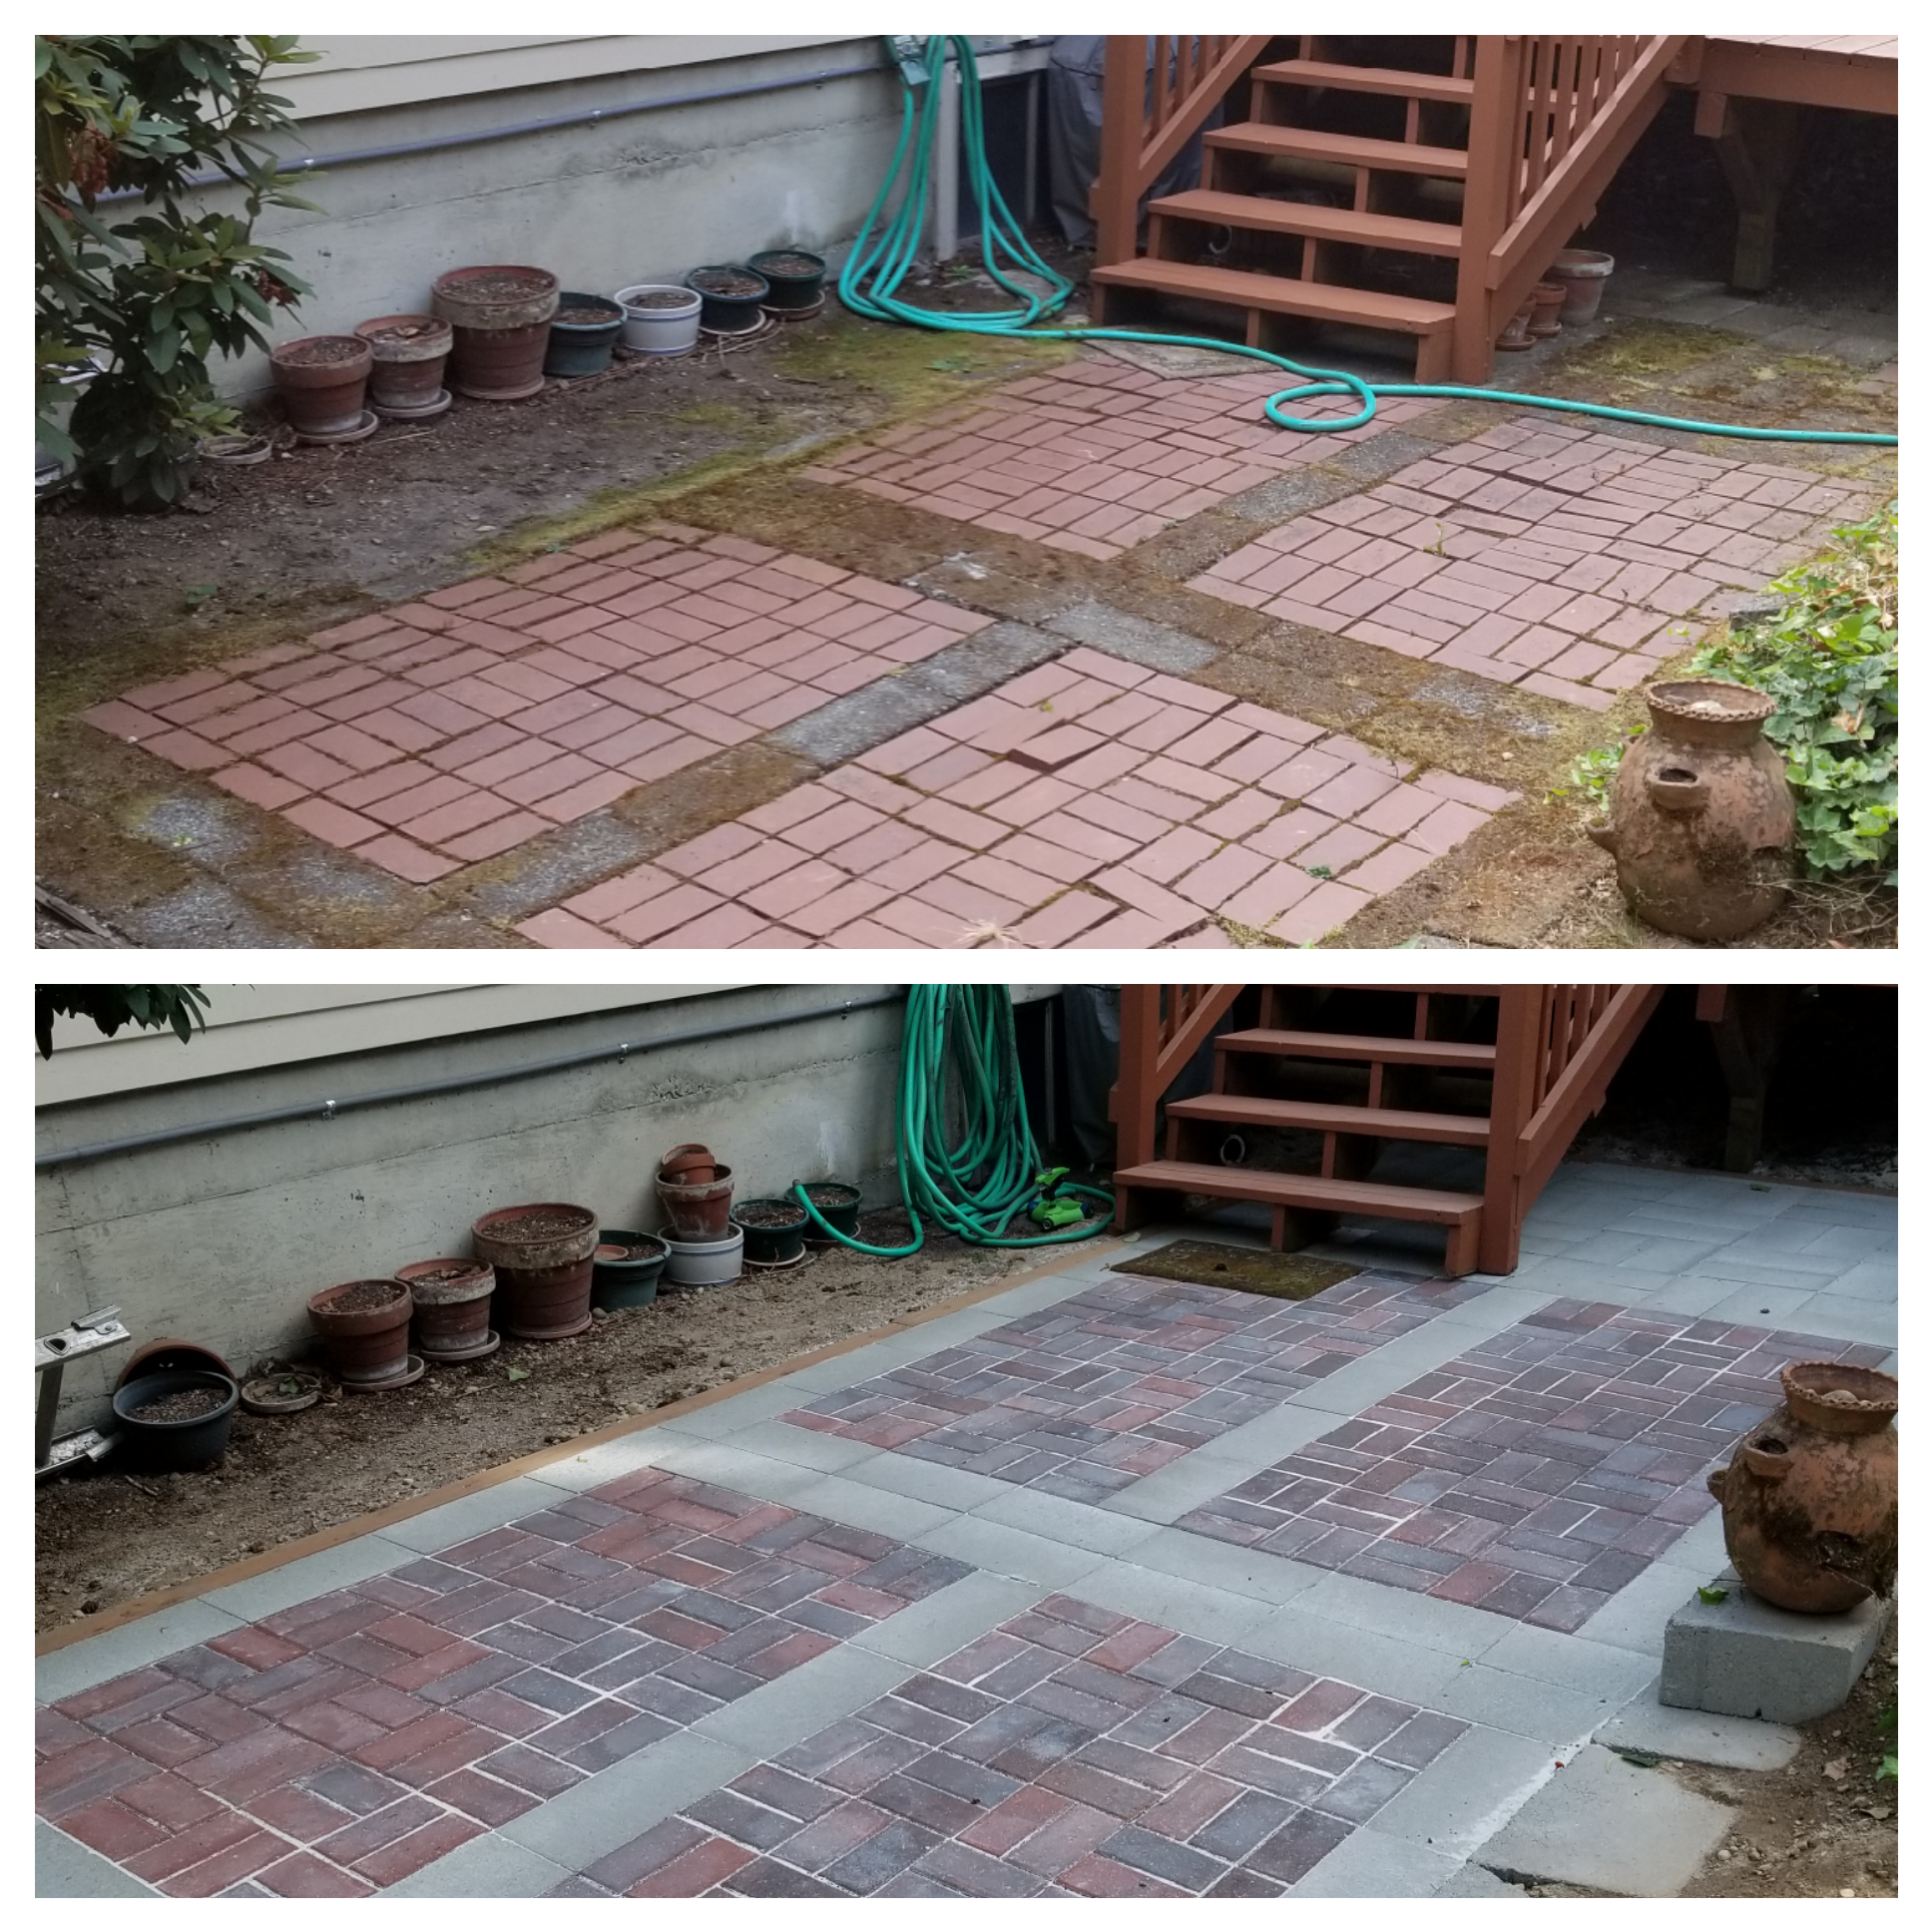 Renovation a patio area